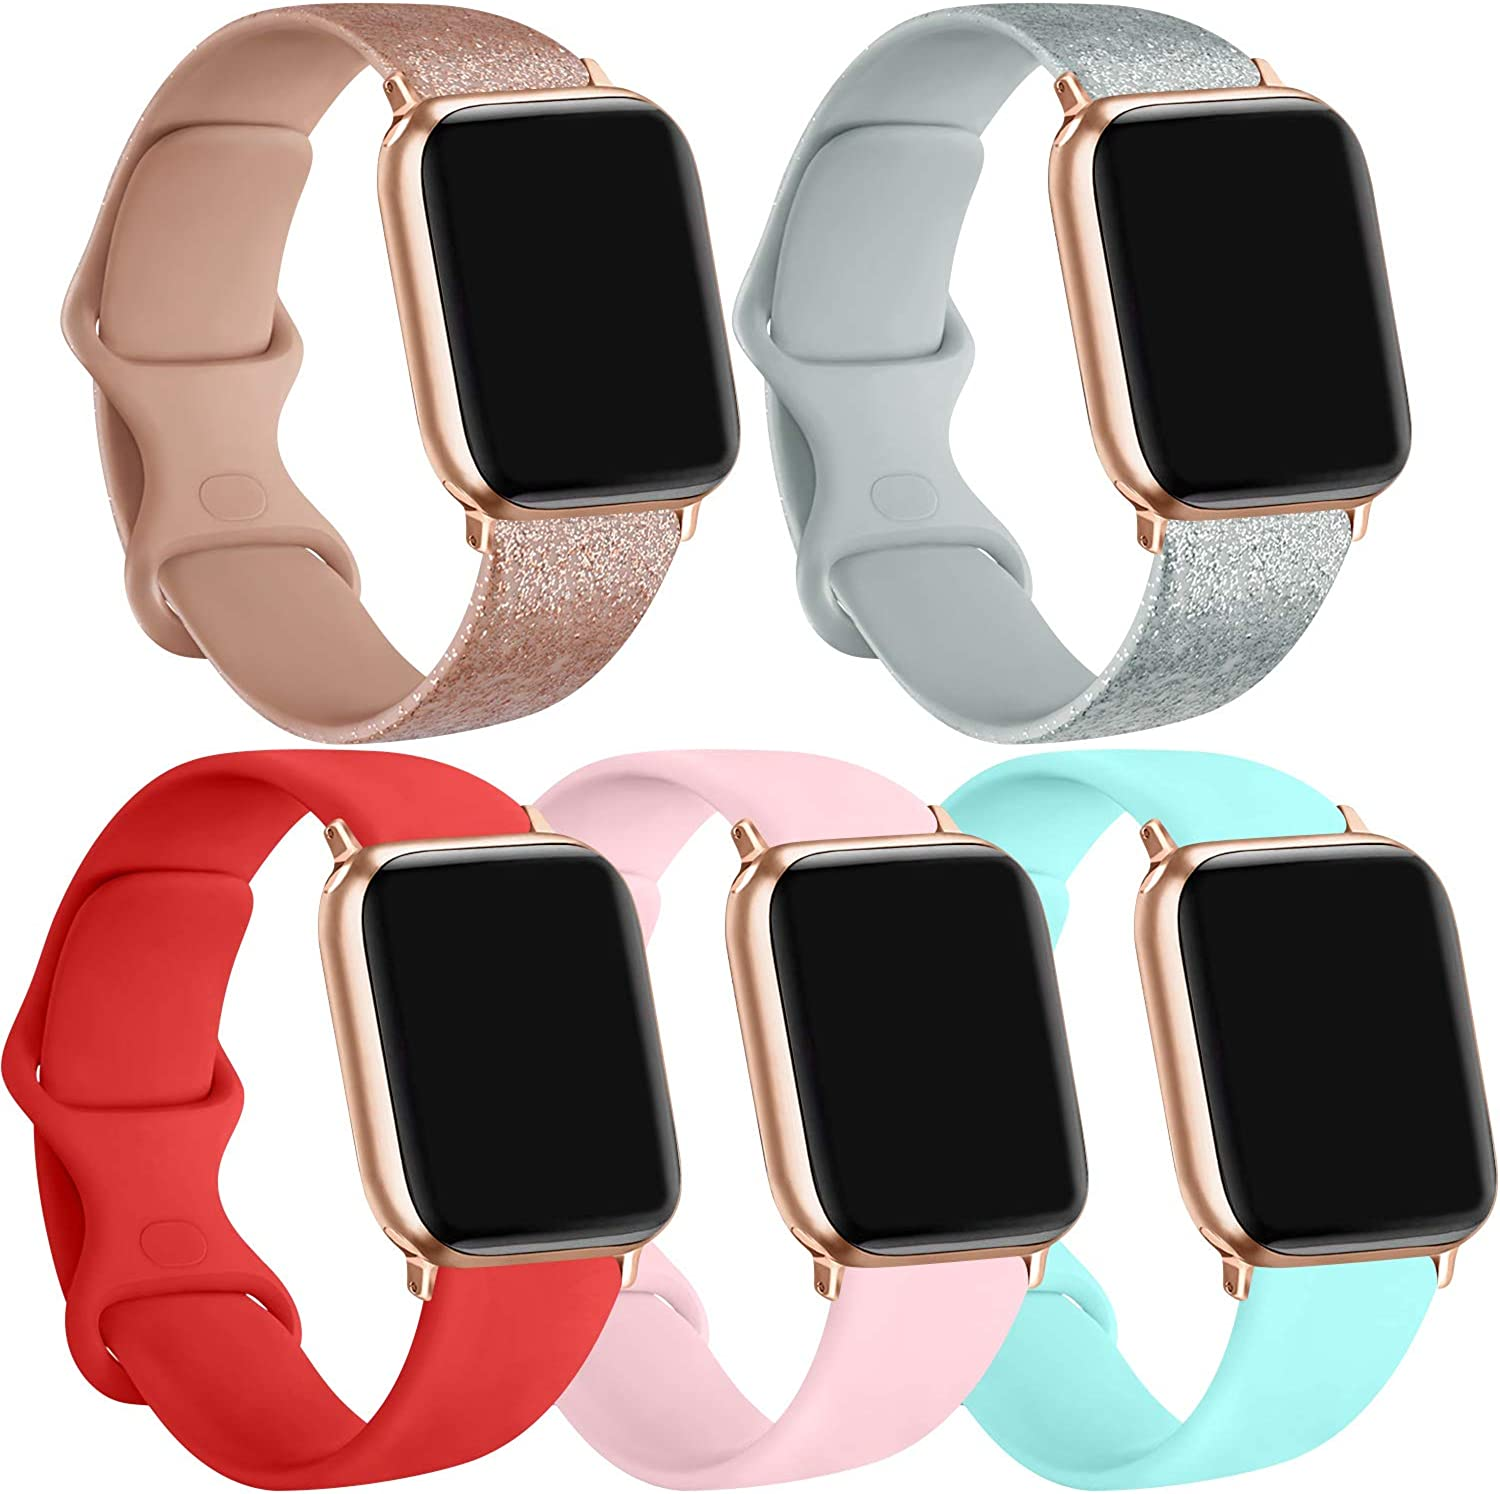 Amazon Com 5 Pack Silicone Bands Compatible For Apple Watch Bands 38mm 40mm 42mm 44mm Soft Silicone Band Sport Strap Compatible For Apple Iwatch Series 6 5 4 3 Se